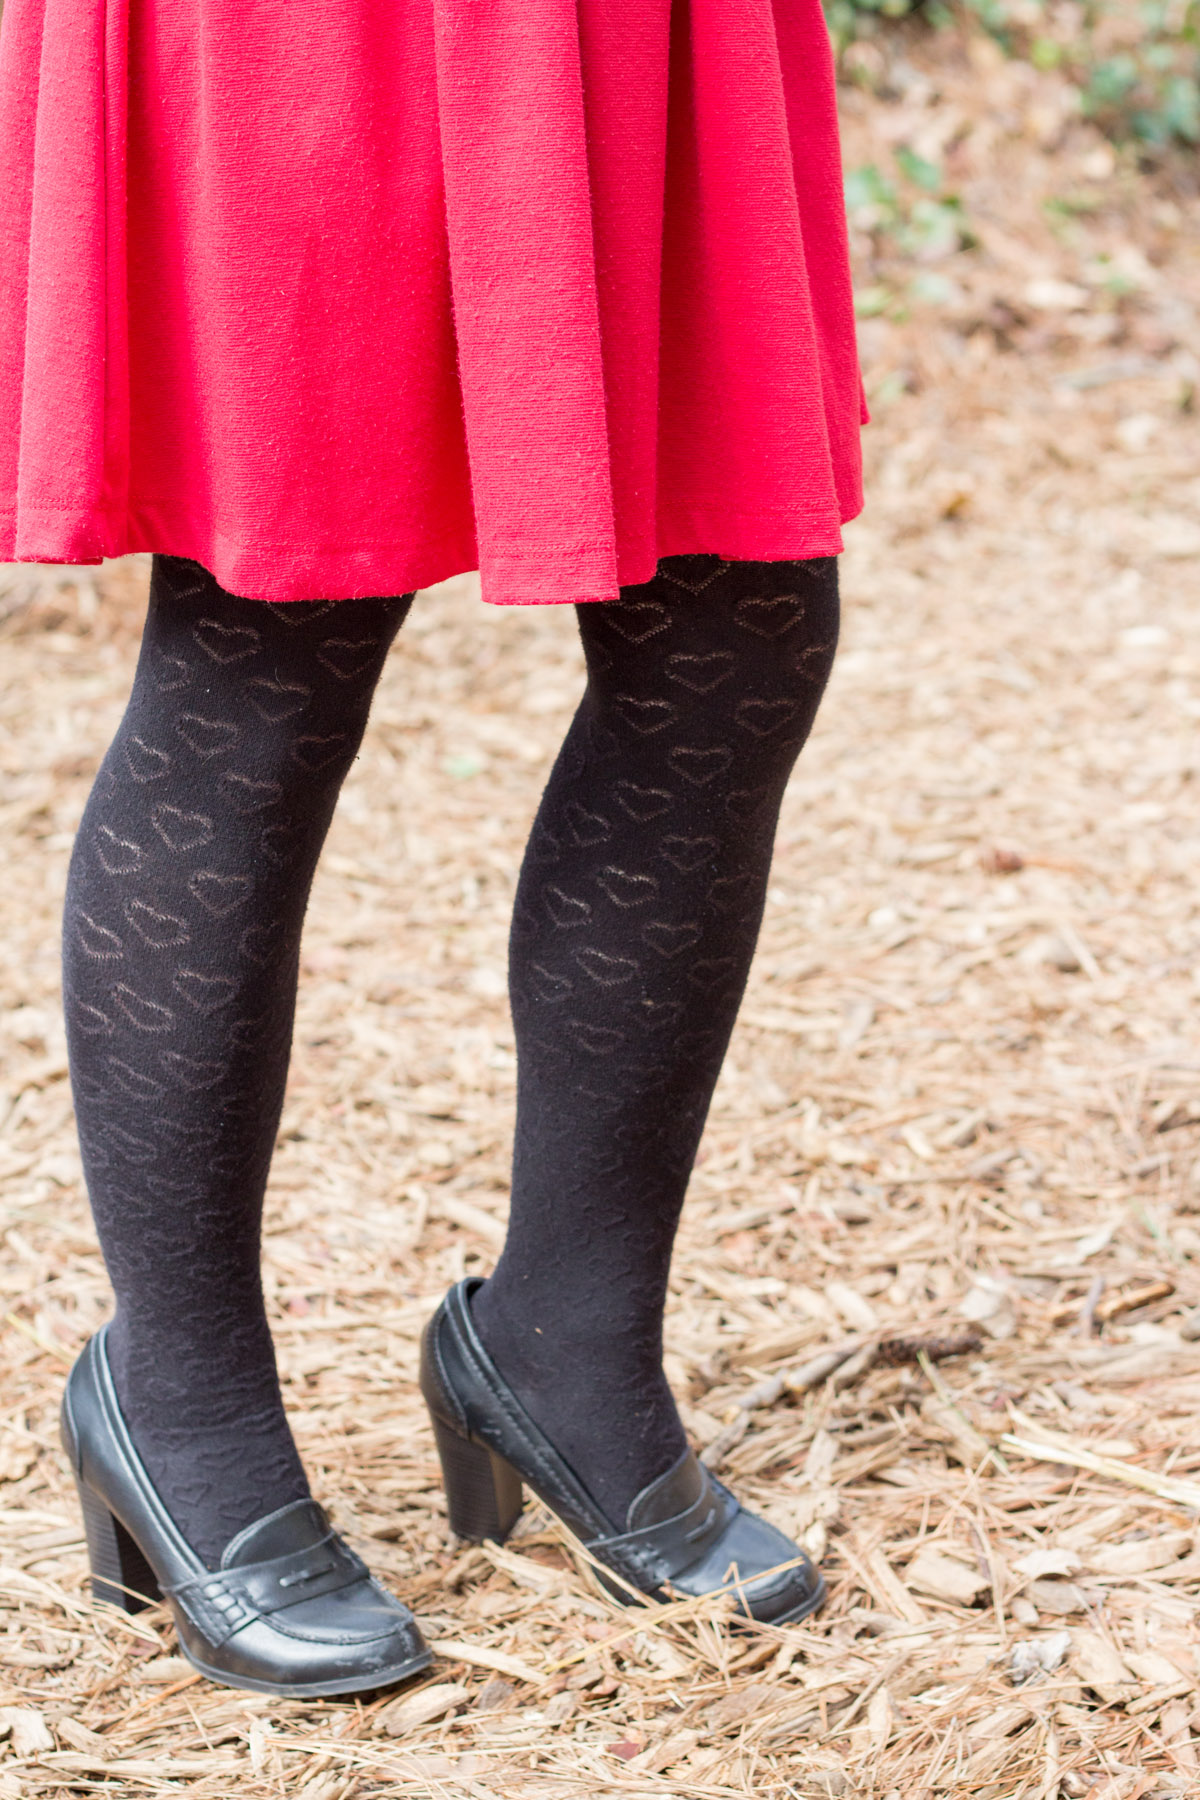 Heart Print Sweater Tights from Forever 21 with Black Loafer Heels